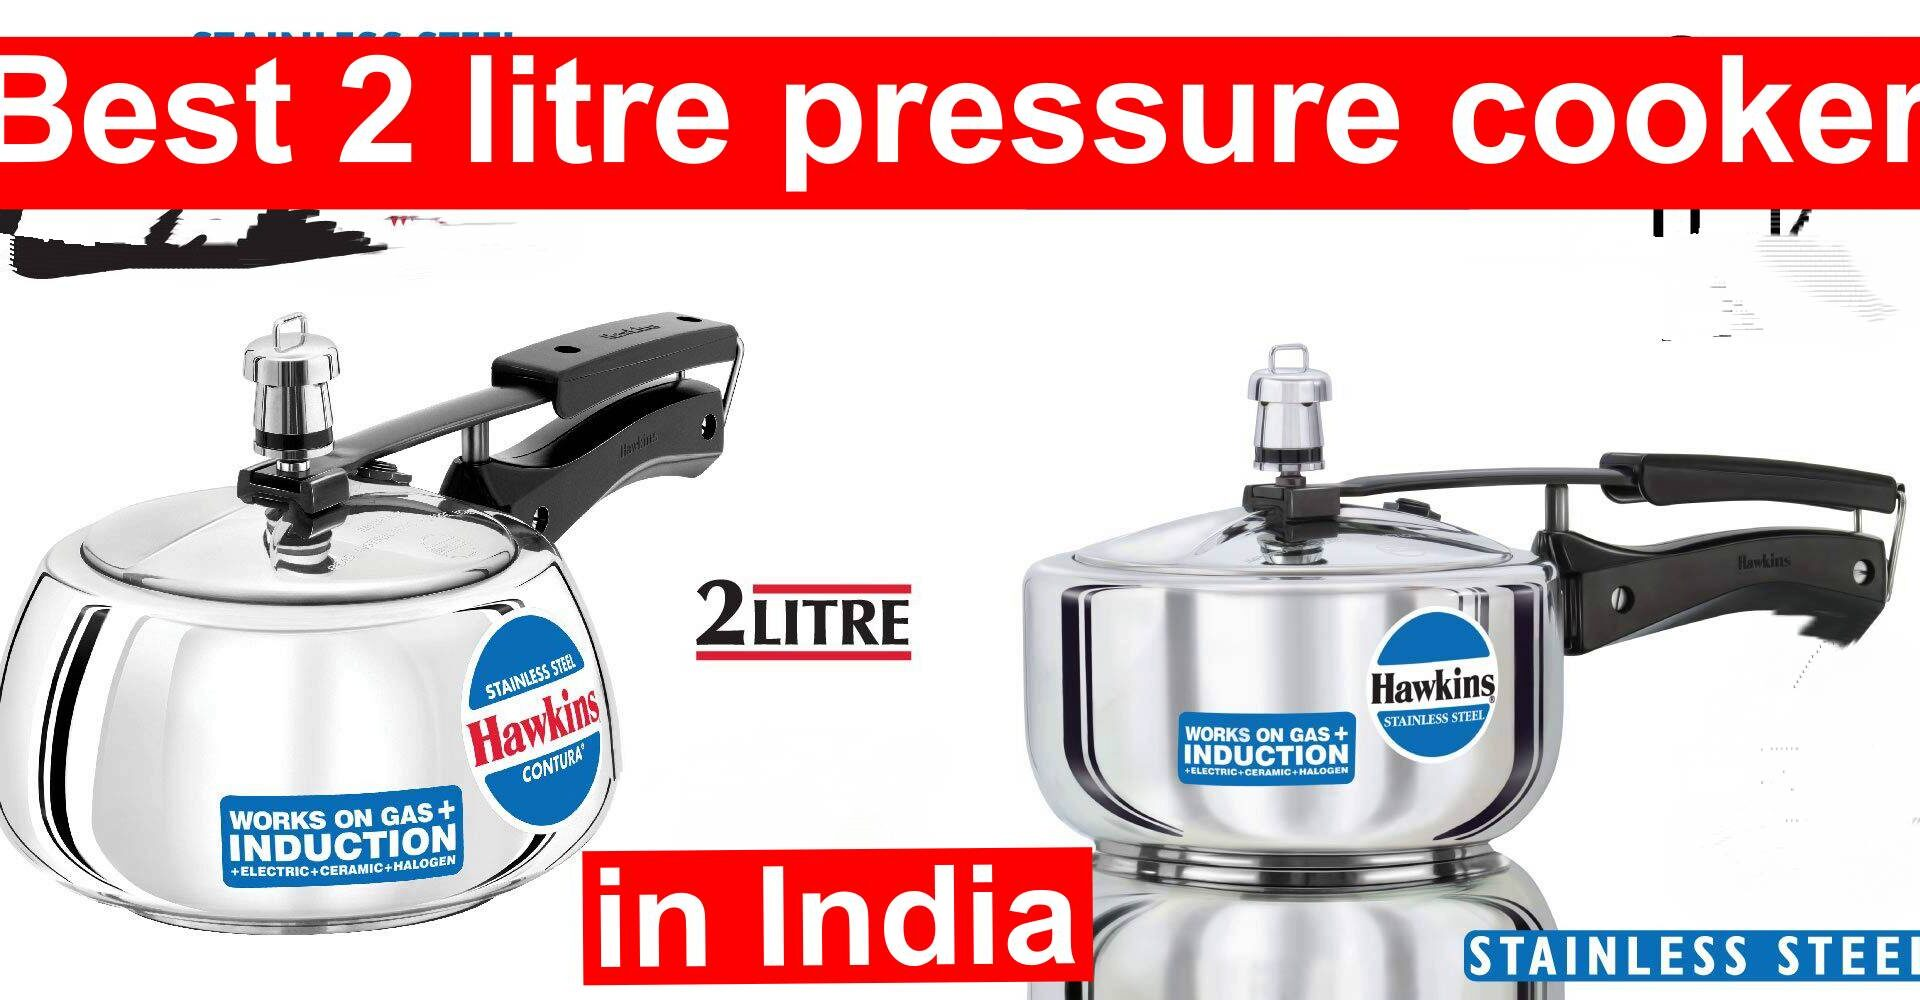 Best 2 litre pressure cooker in India